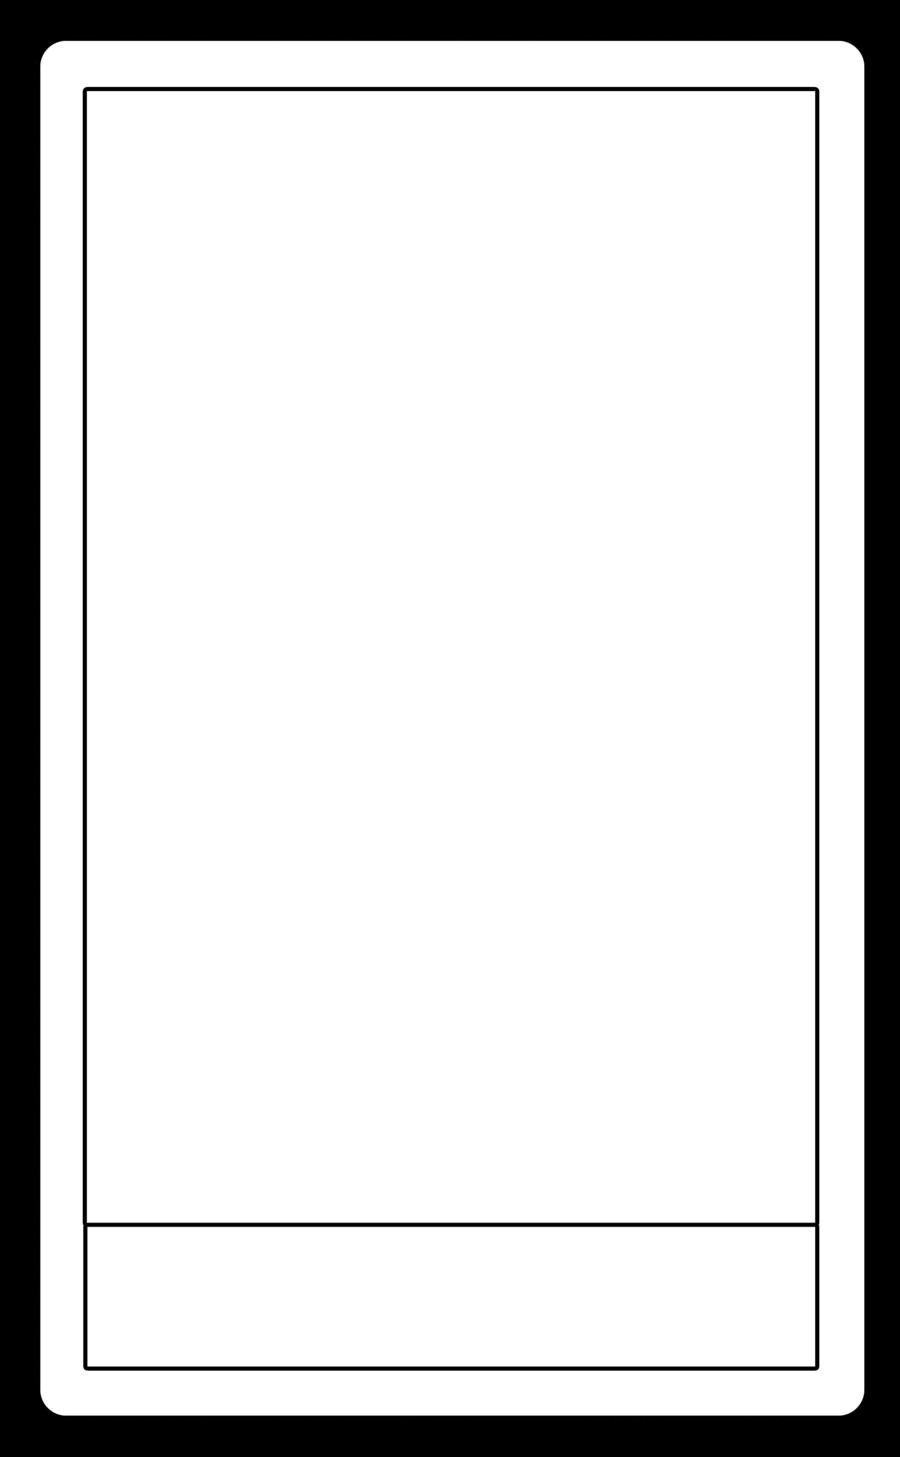 Blank Trading Card Template Tarot Card Template by Arianod On Deviantart